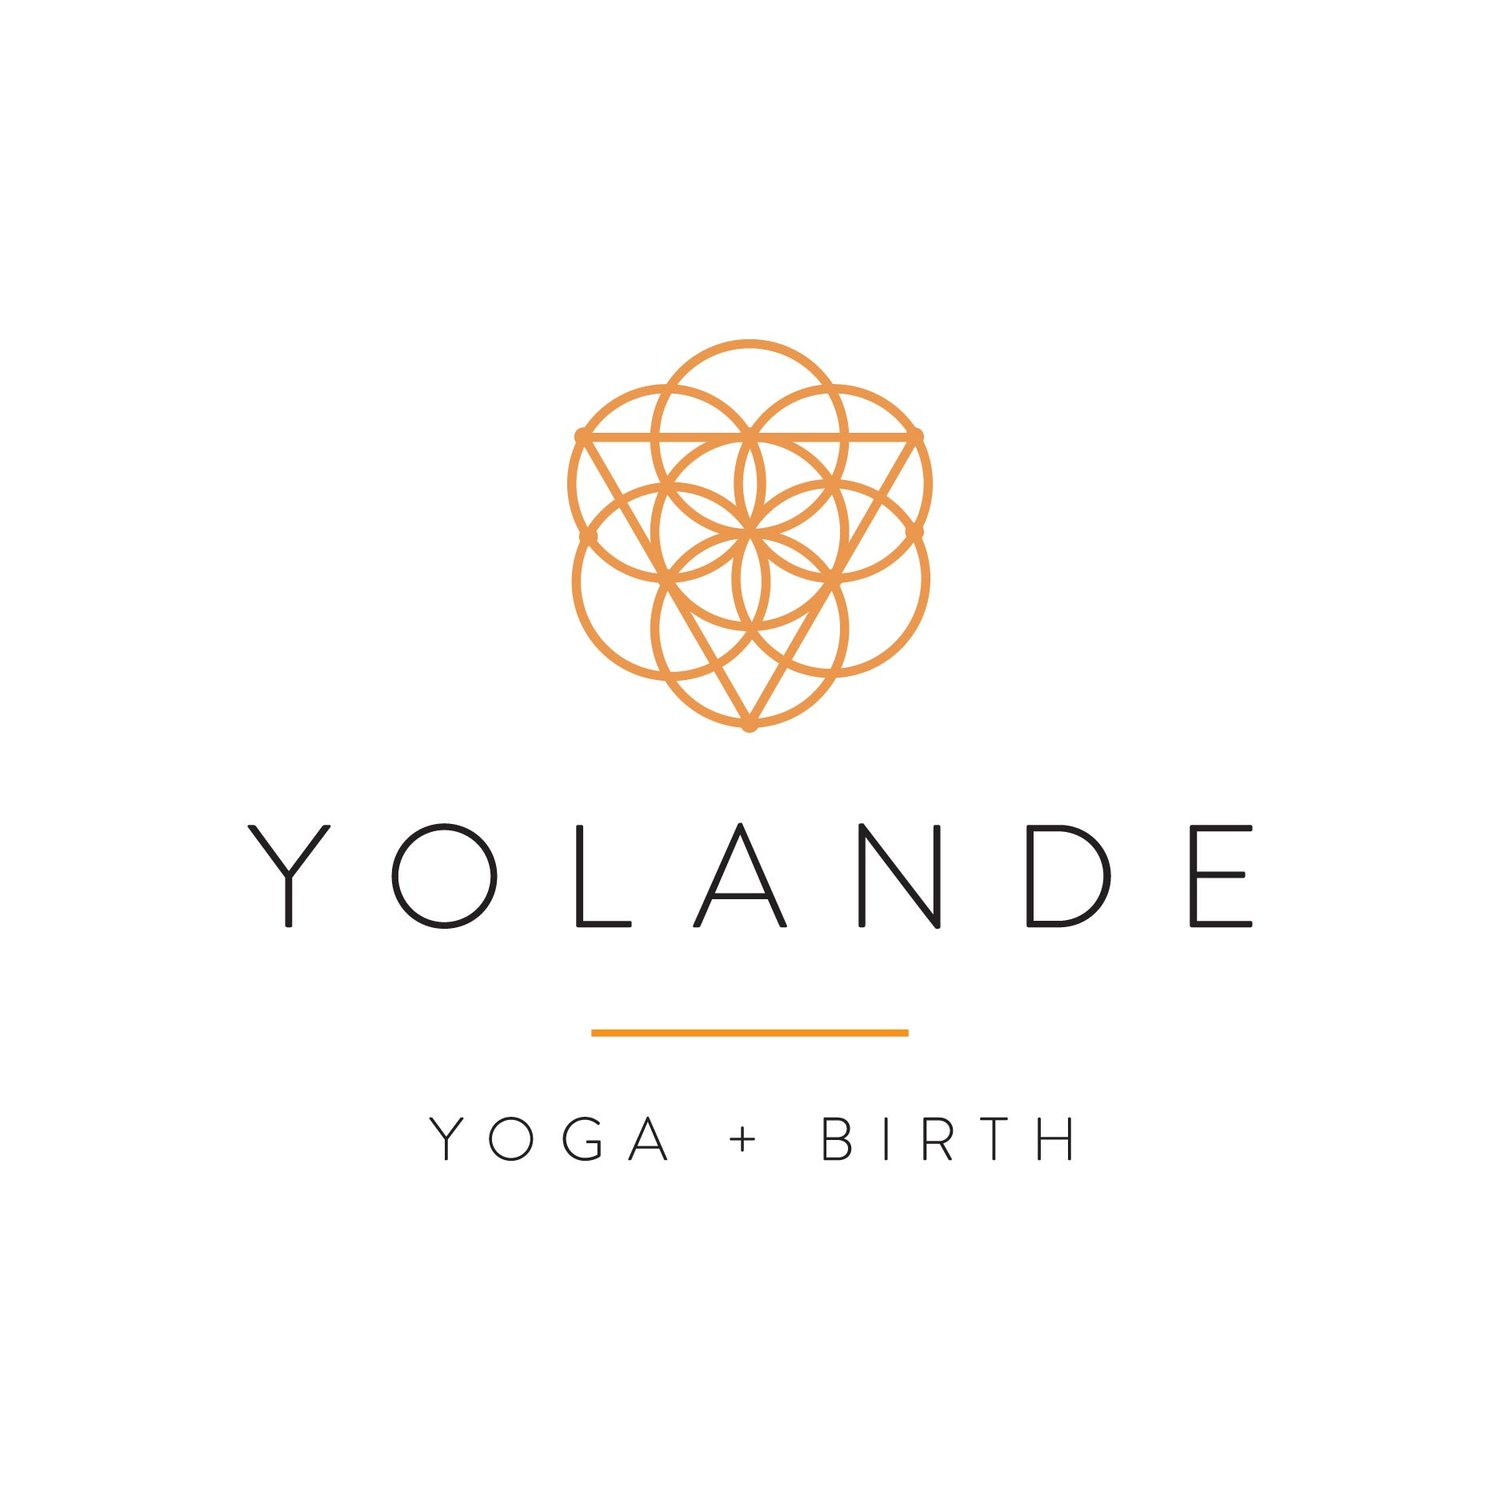 yolande yoga & birth